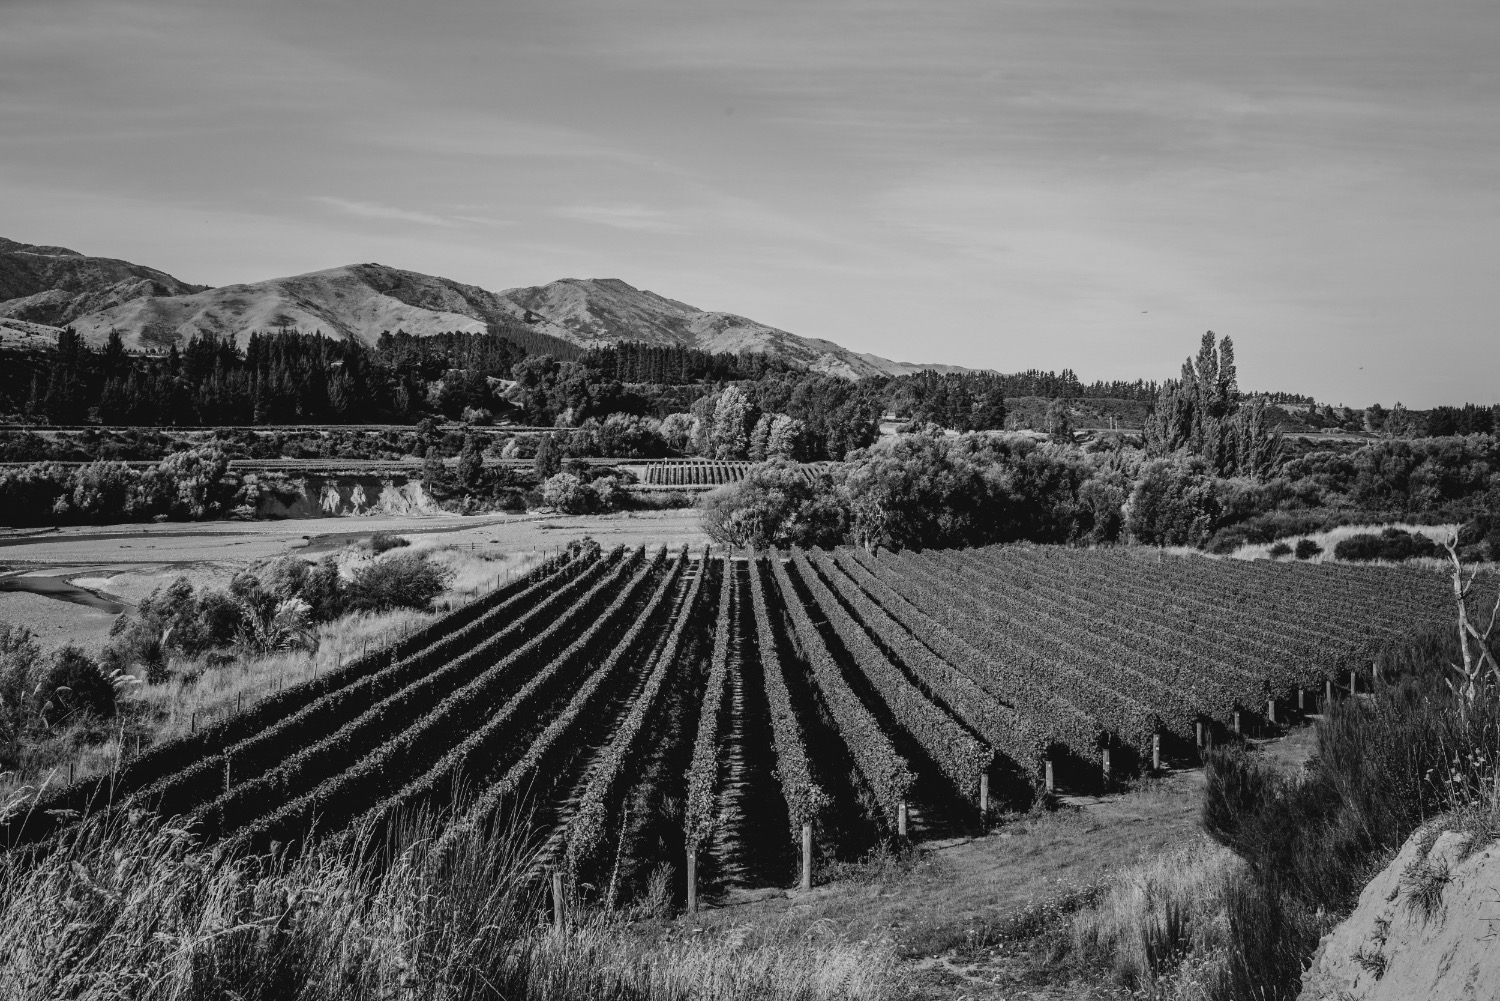 Whenua Awa vineyard - Whenua Awa, 'river lands', is our vineyard to the east of Te Tauihu.Rising majestically behind Whenua Awa vineyard, Tapuae-o-Uenuku has watched over our land and people since we first arrived here, and will continue to do so for centuries to come.Read more >